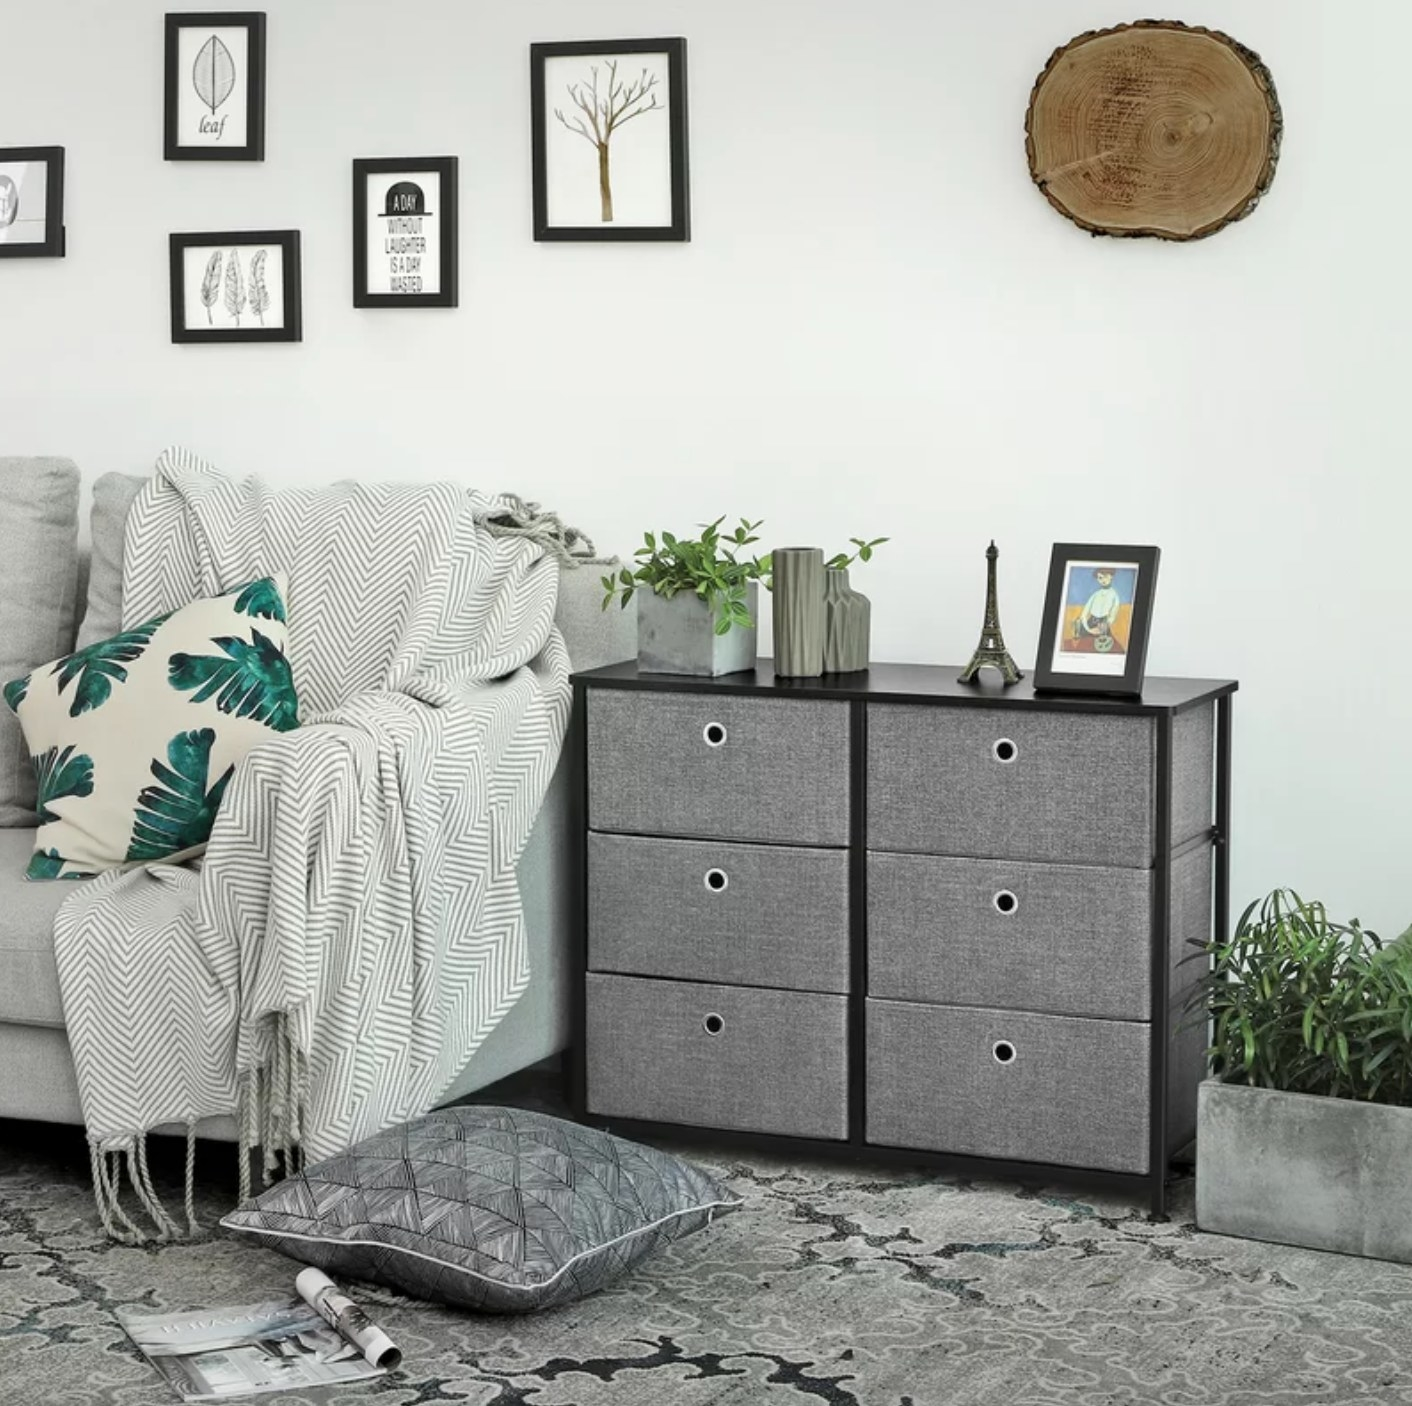 The six-drawer double dresser with gray felt drawers set in a black metal frame